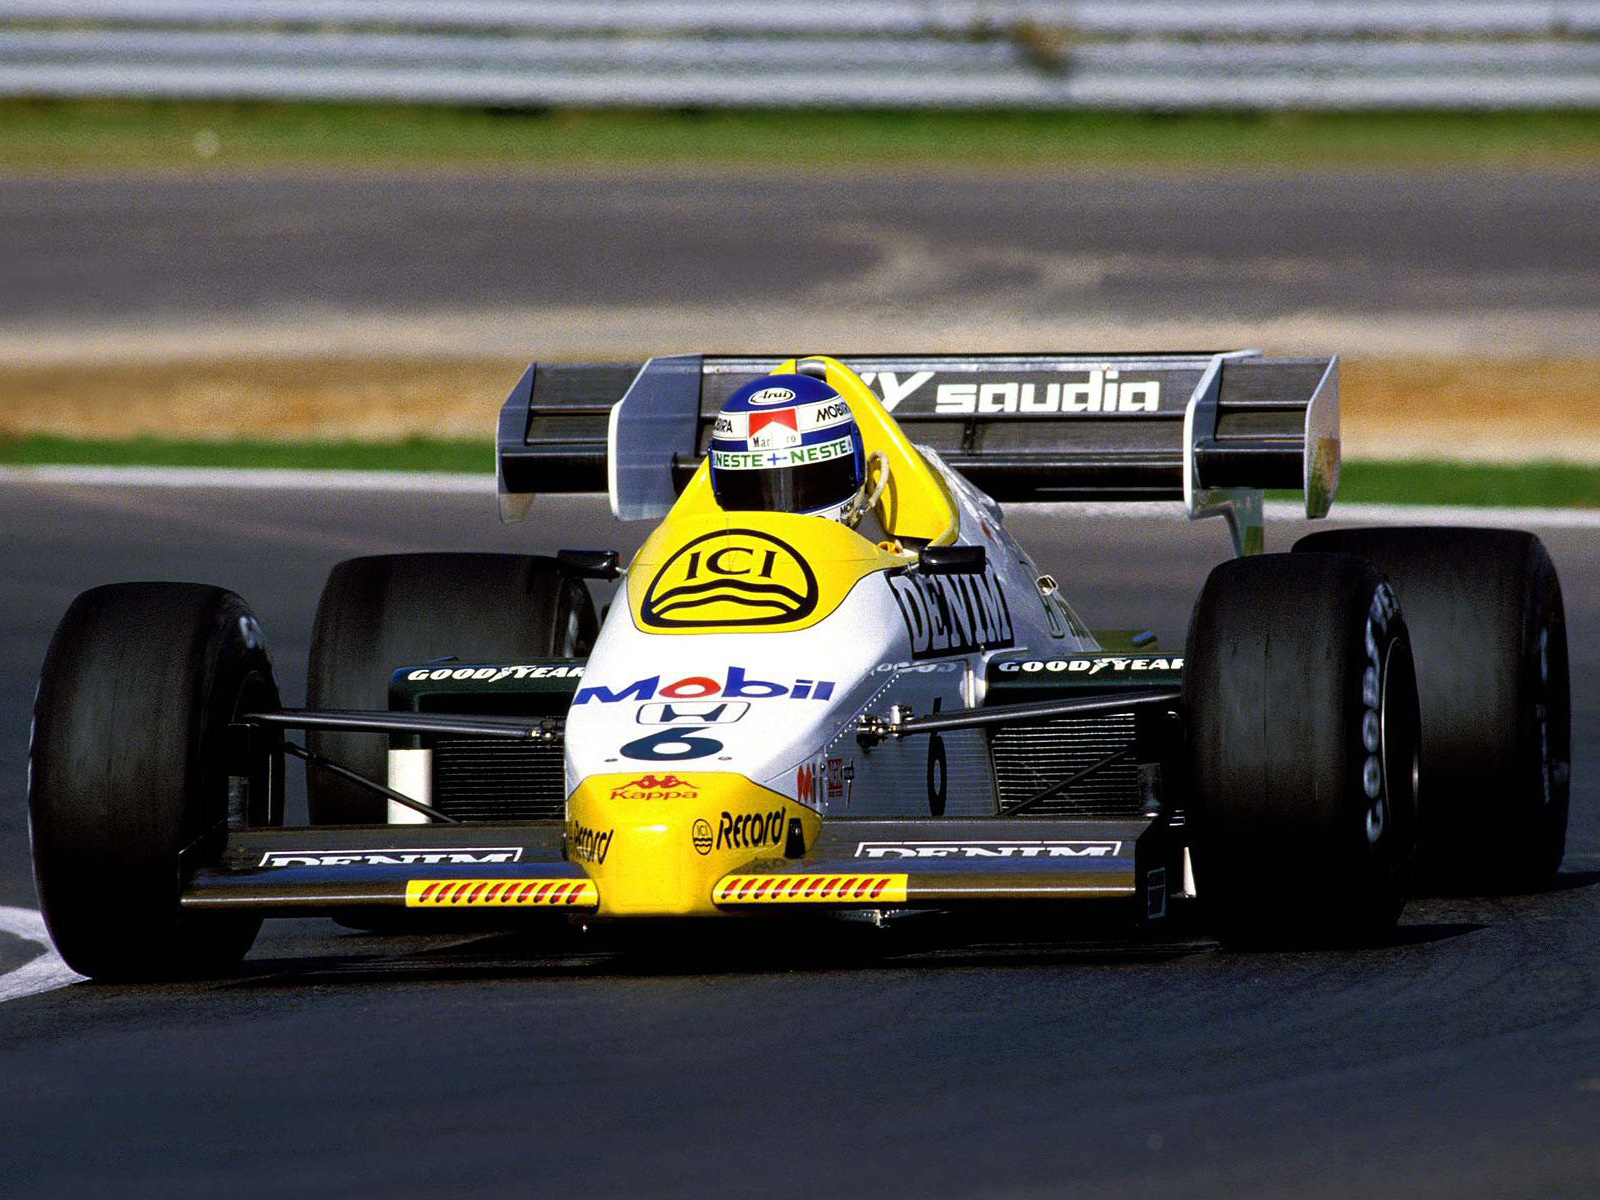 Small Size Car Wallpapers 1984 Williams Fw09b Formula One F 1 Race Racing G